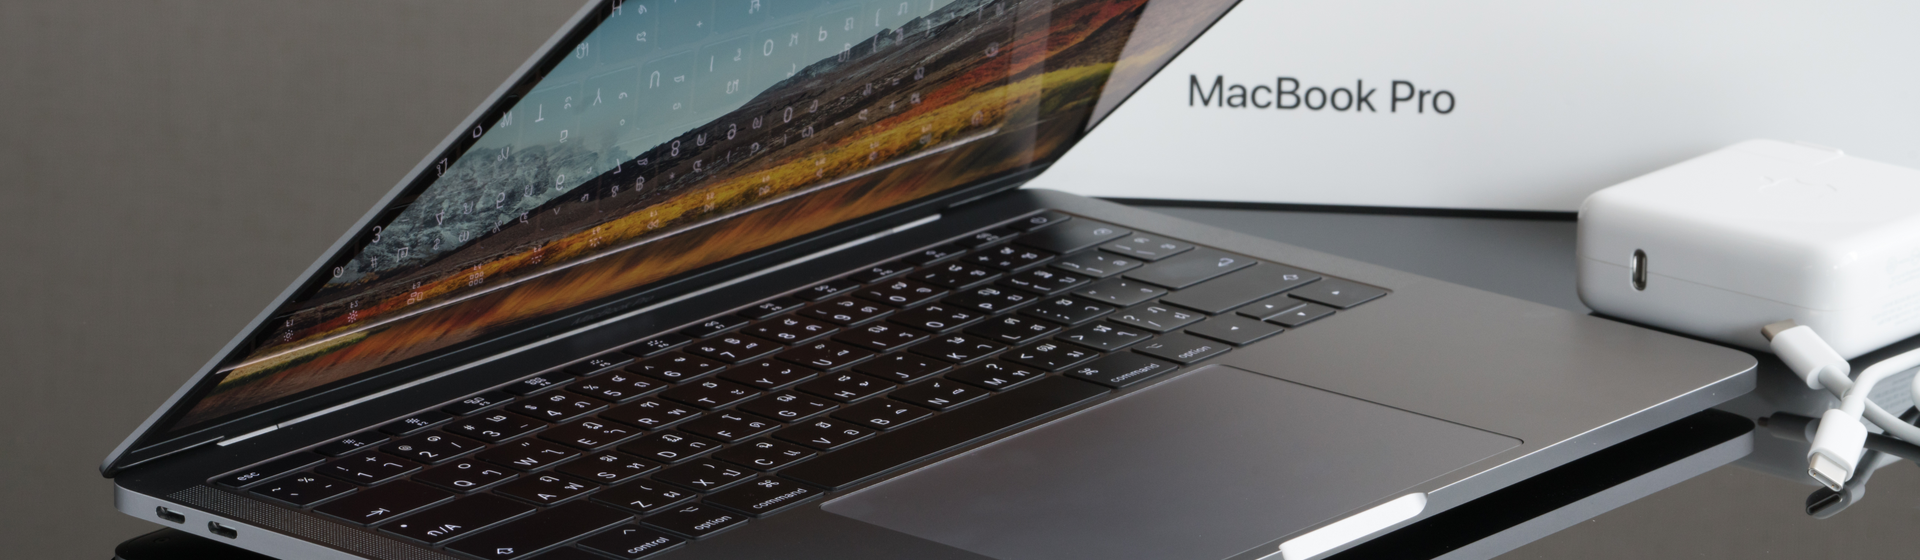 MacBook Pro 2020 vs 2019: comparativo entre os notebooks da Apple